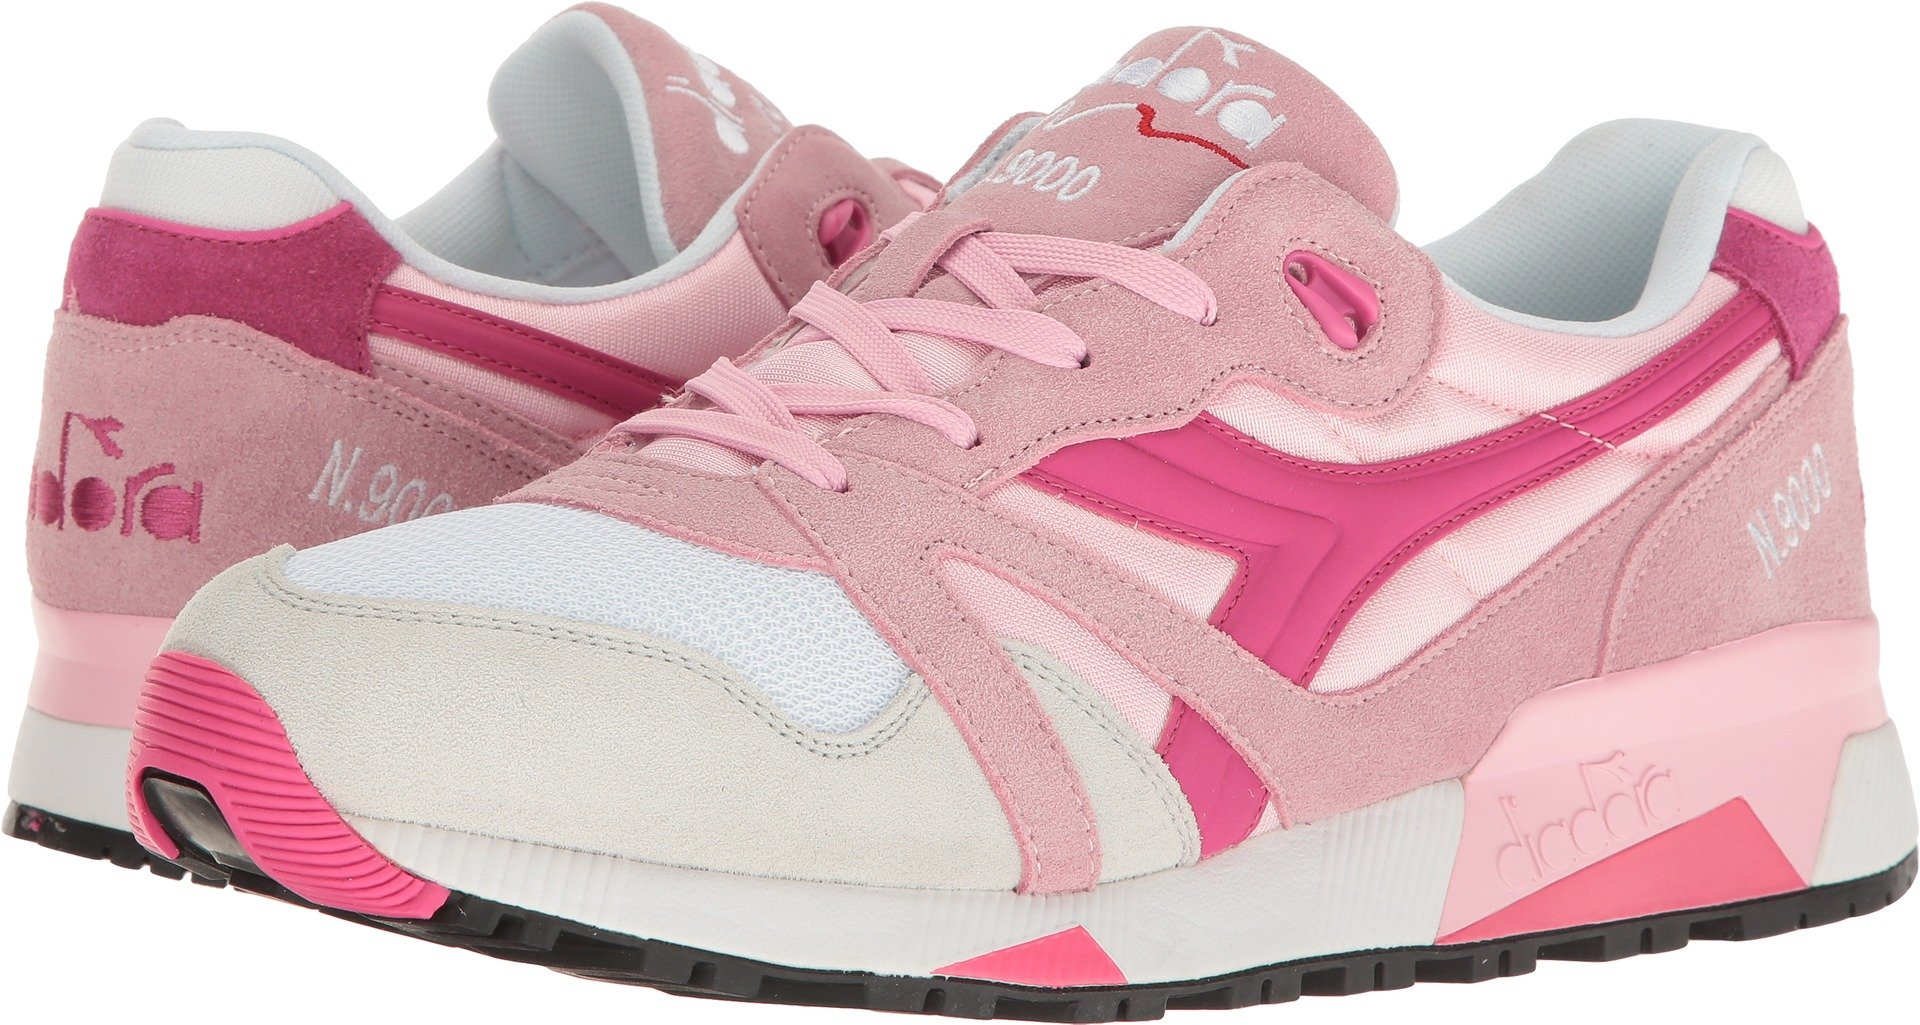 Diadora Unisex N9000 NYL Pink Rose Shadow/Magenta 13.5 Women/12 Men M US